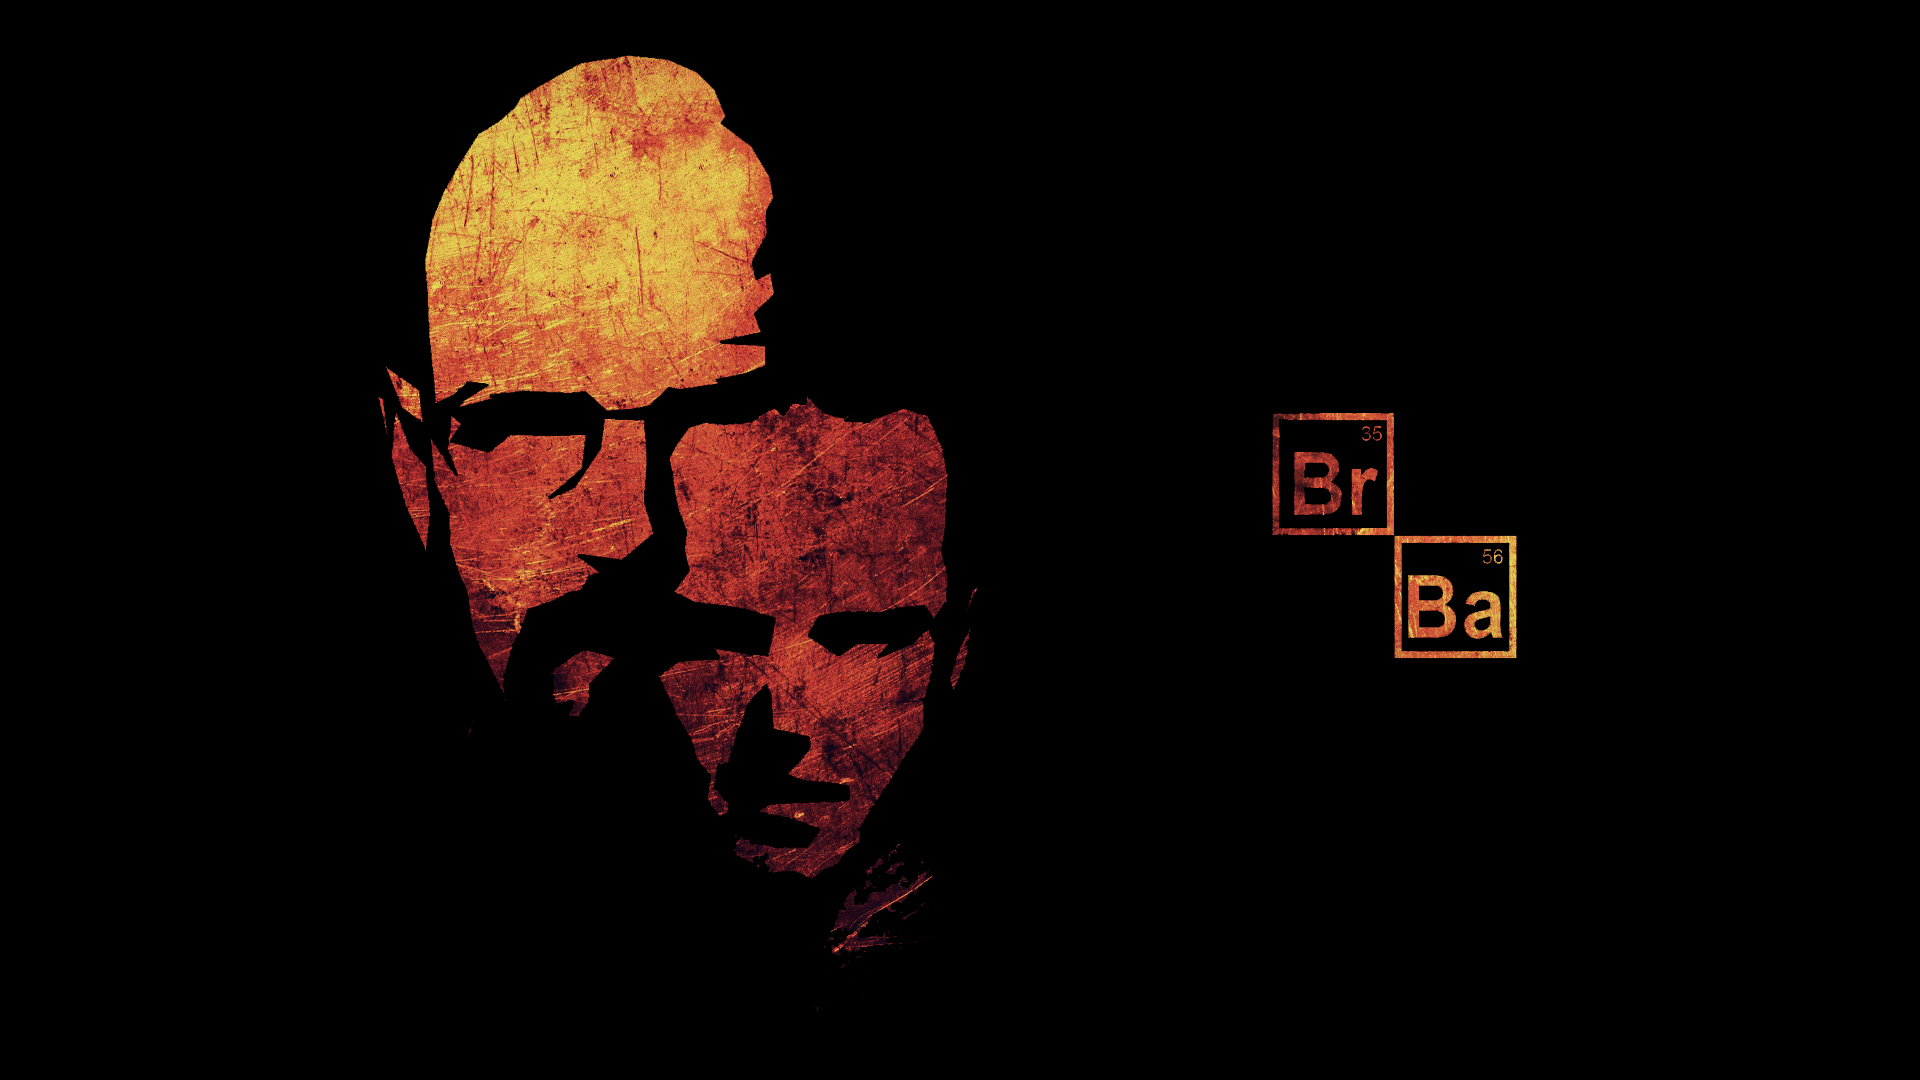 Breaking Bad Res: 1920x1080 HD / Size:598kb. Views: 148158